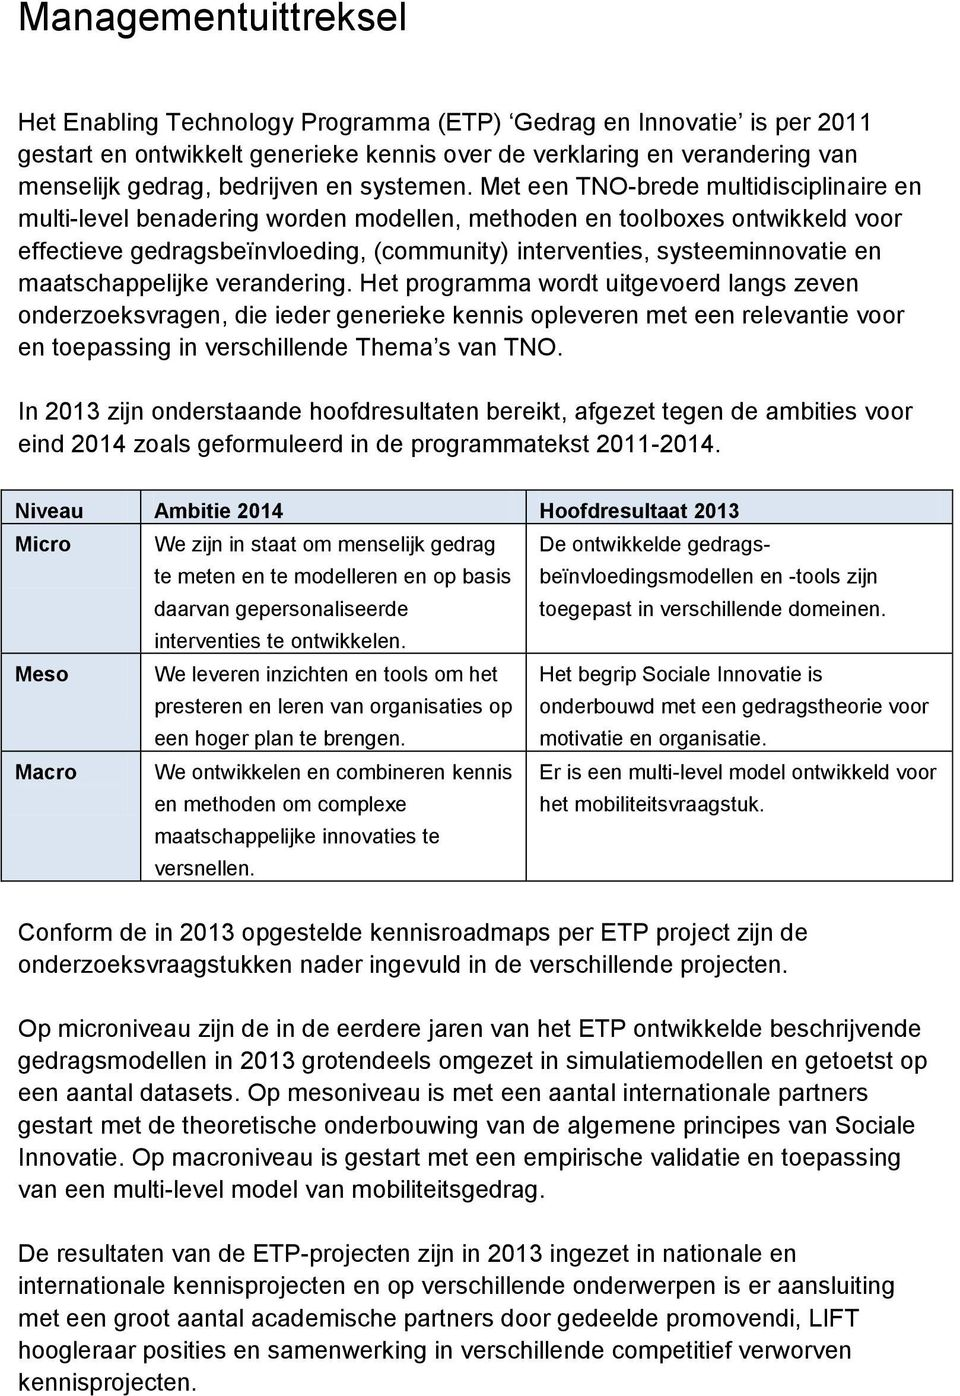 Met een TNO-brede multidisciplinaire en multi-level benadering worden modellen, methoden en toolboxes ontwikkeld voor effectieve gedragsbeïnvloeding, (community) interventies, systeeminnovatie en